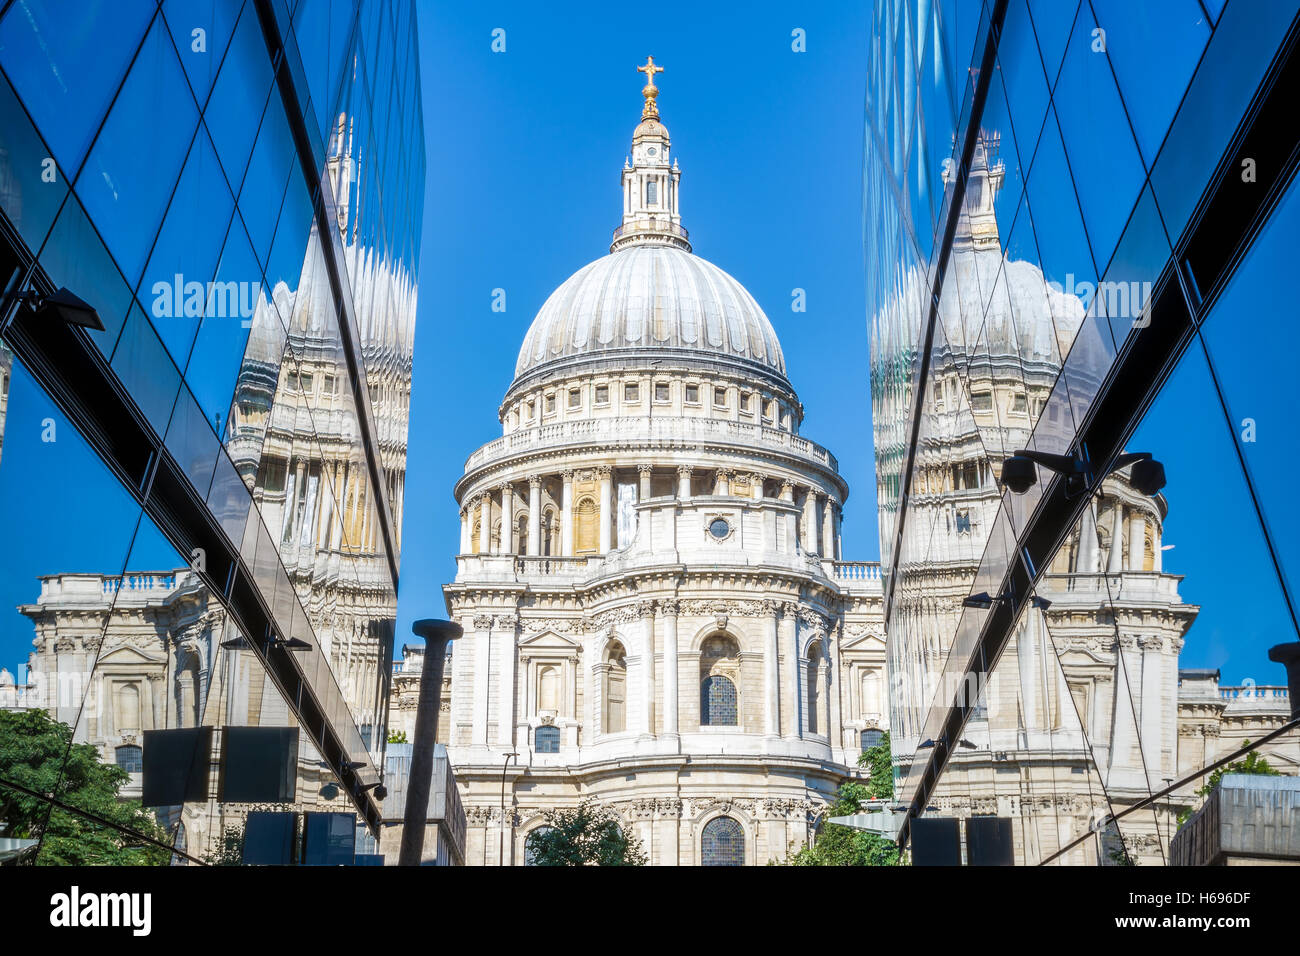 St Pauls Cathedral and its reflection from glass walls of One New Change building in London - Stock Image